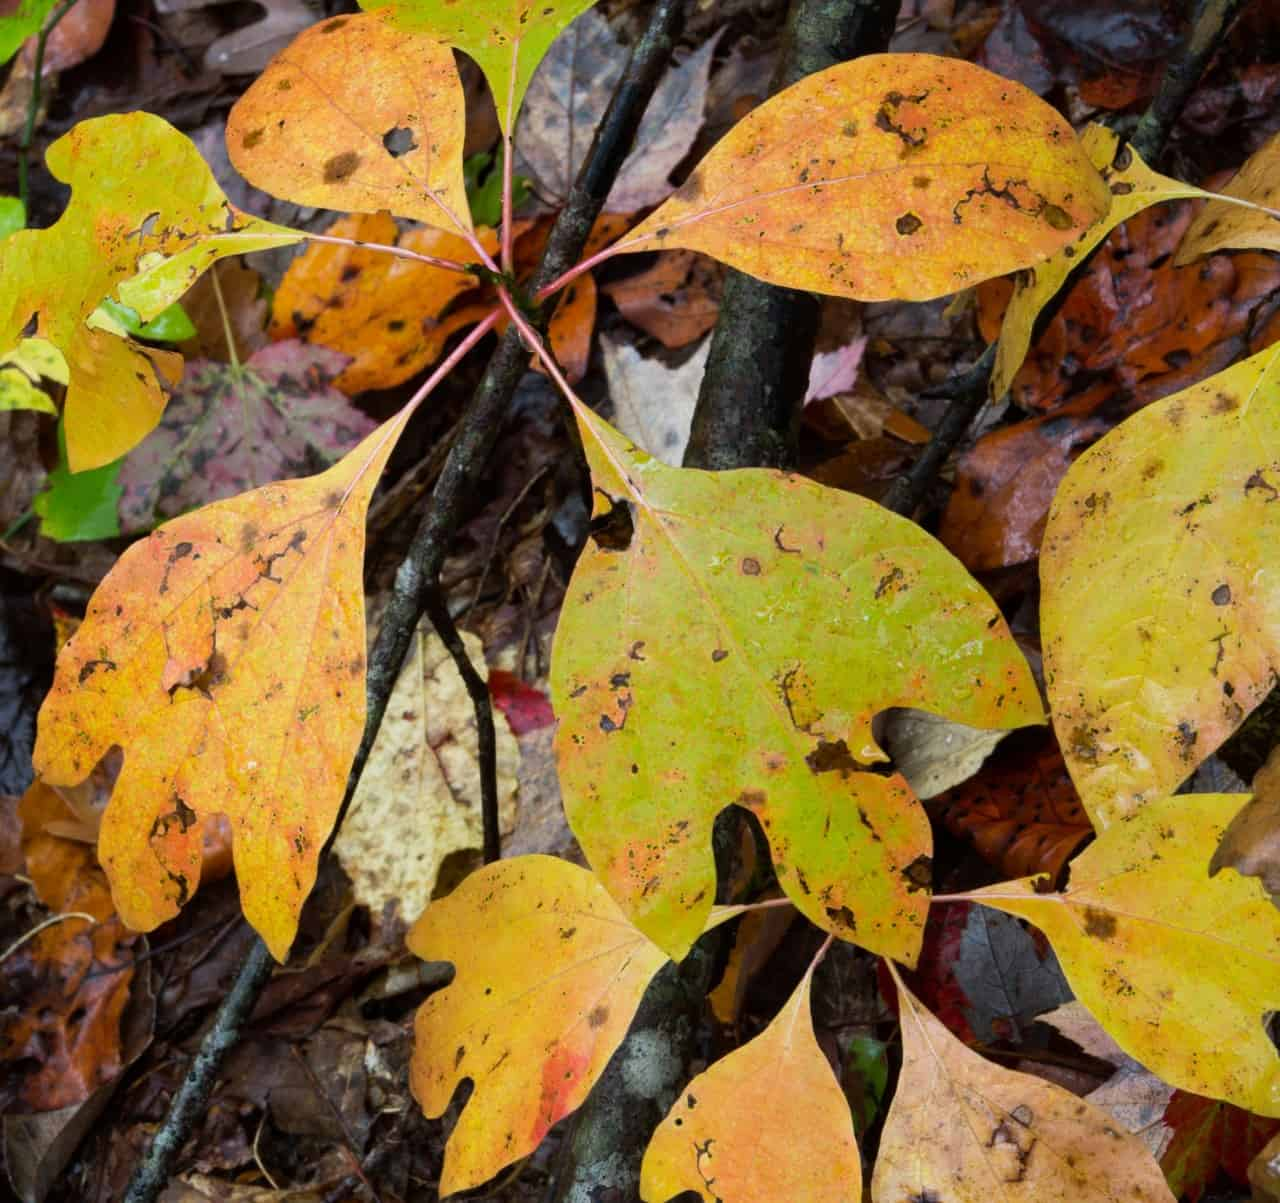 Sassafras trees have brightly-colored autumn leaves.